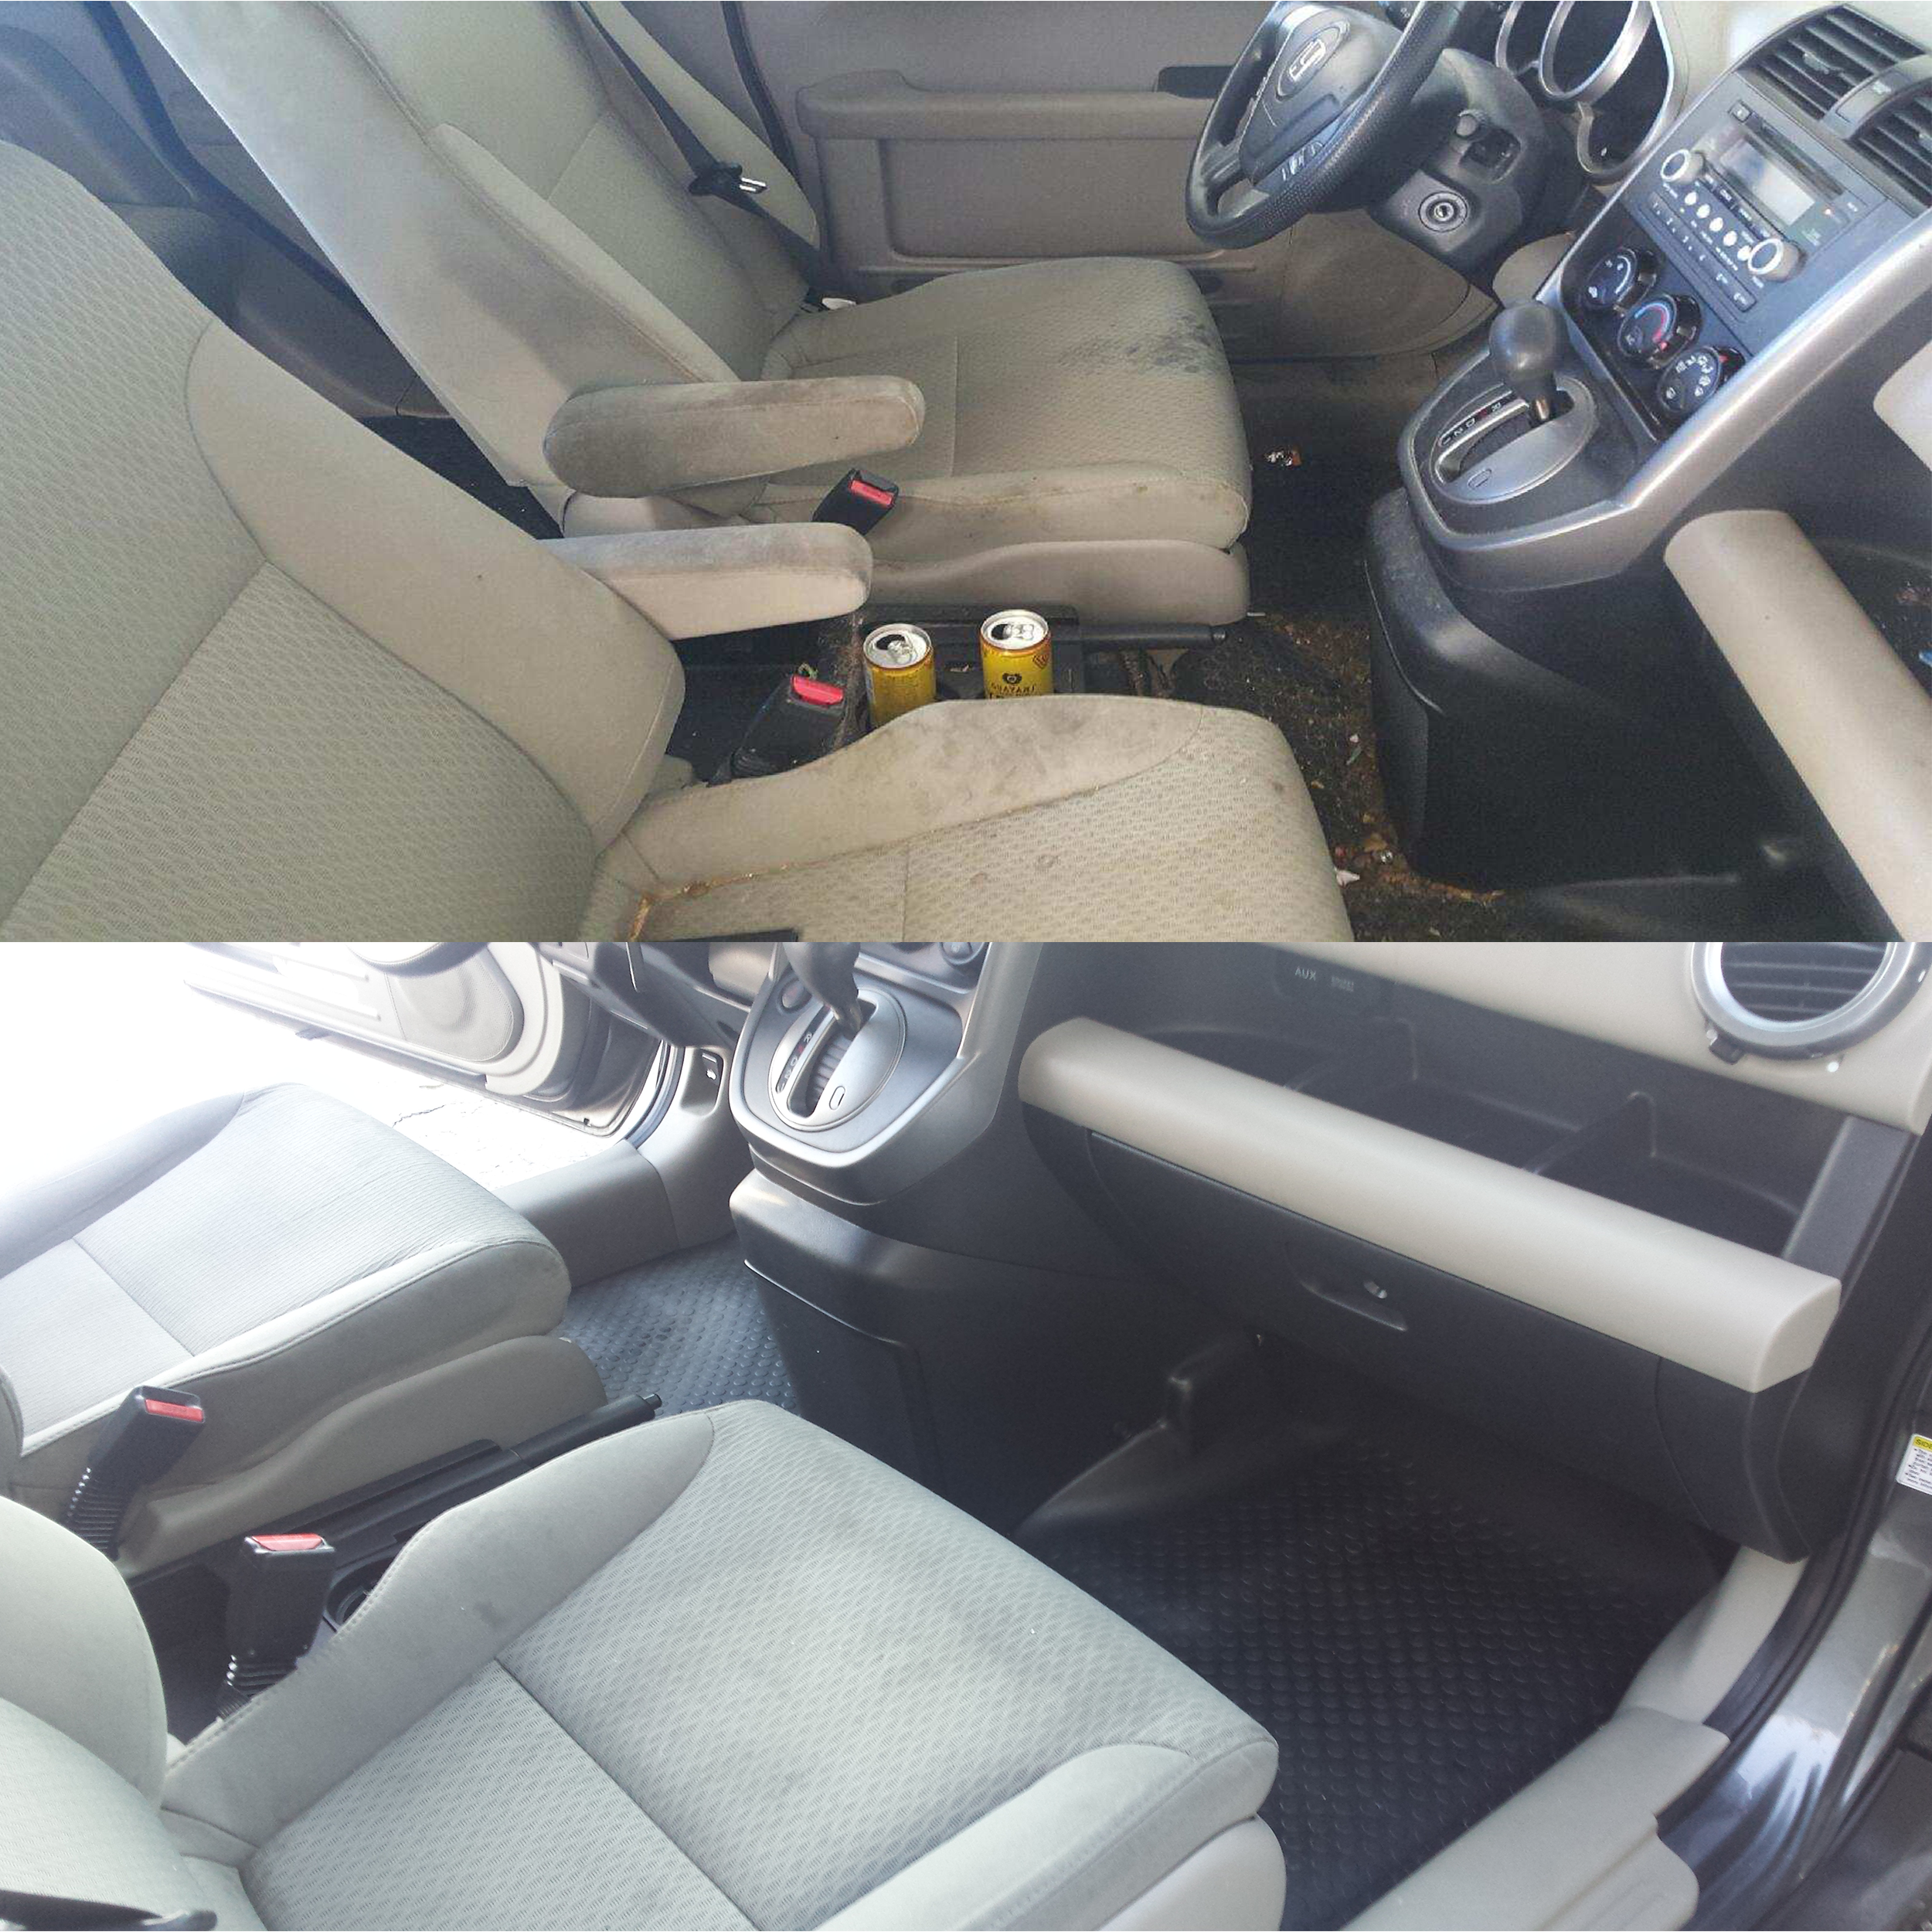 stock car and royalty valeting cleaning image auto staff concept free service photo detailing interior